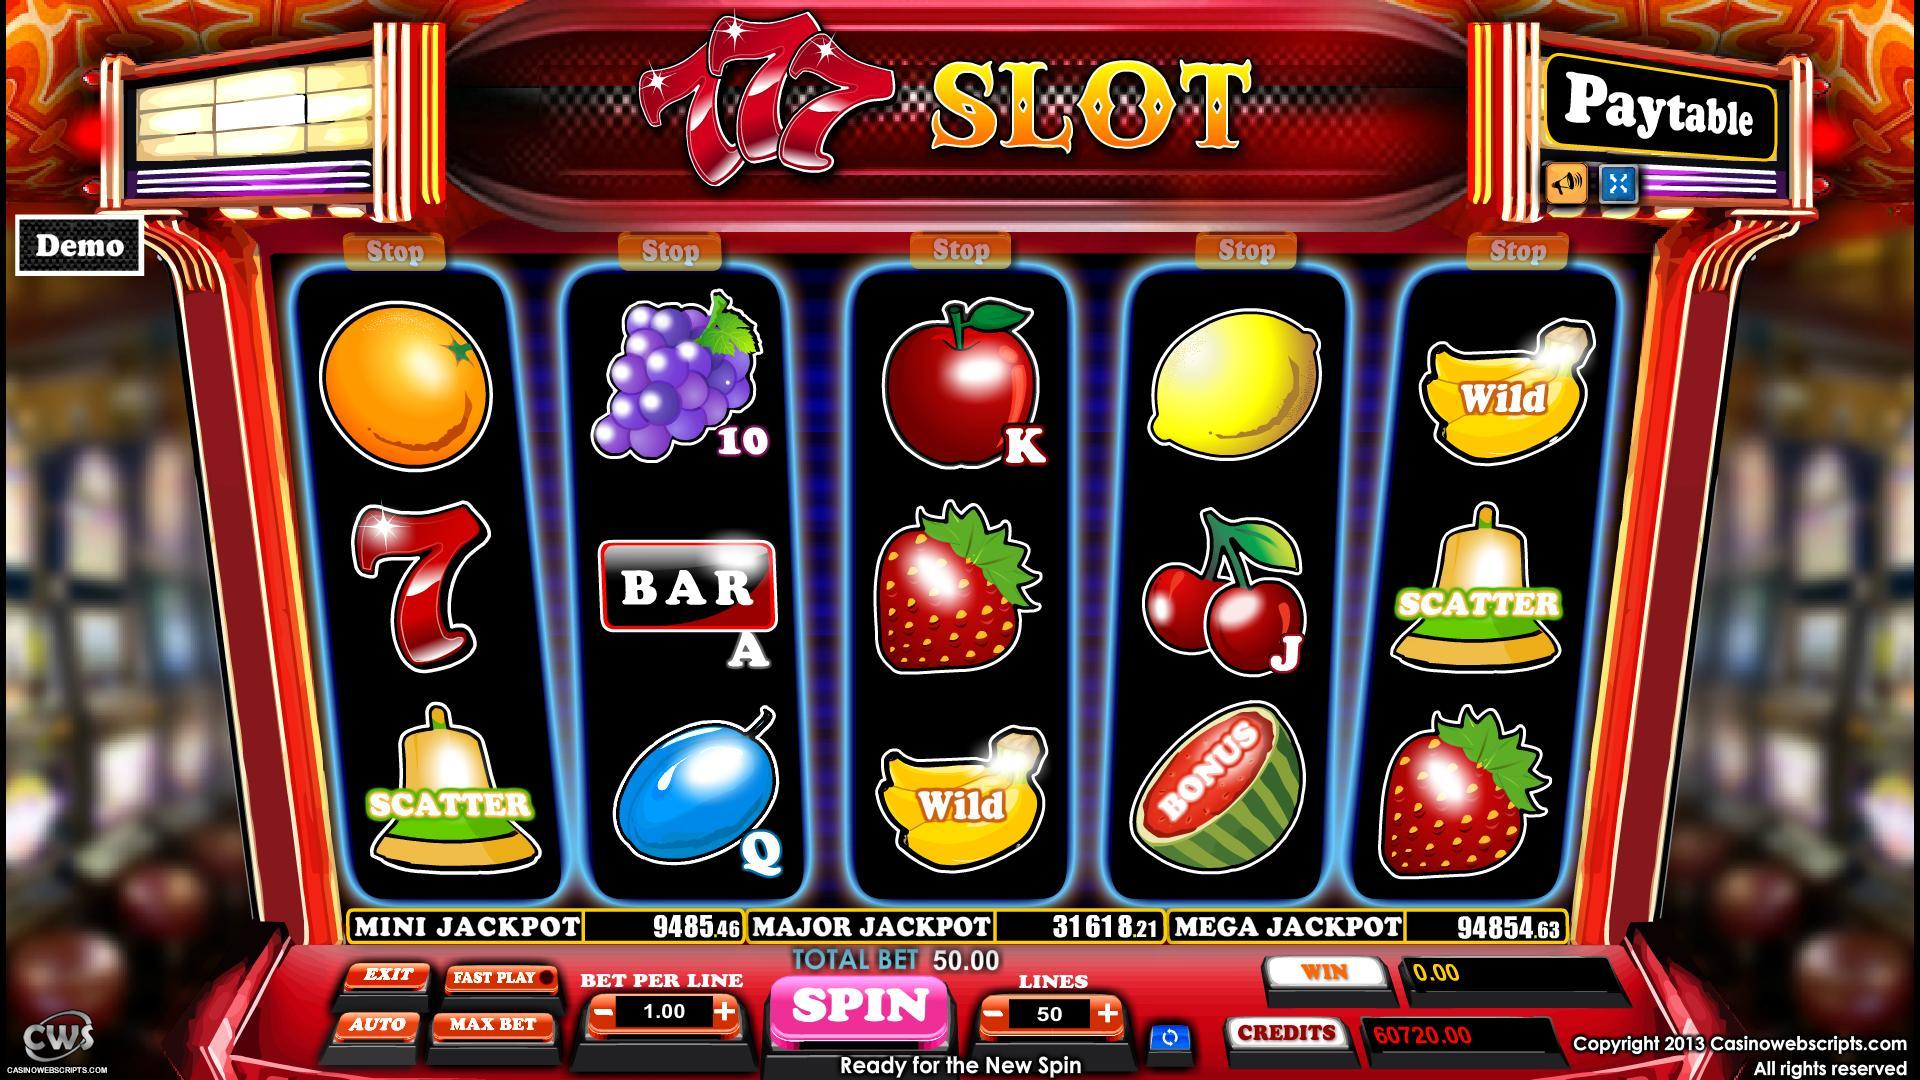 Book of the Ages Slot Machine - Play this Video Slot Online